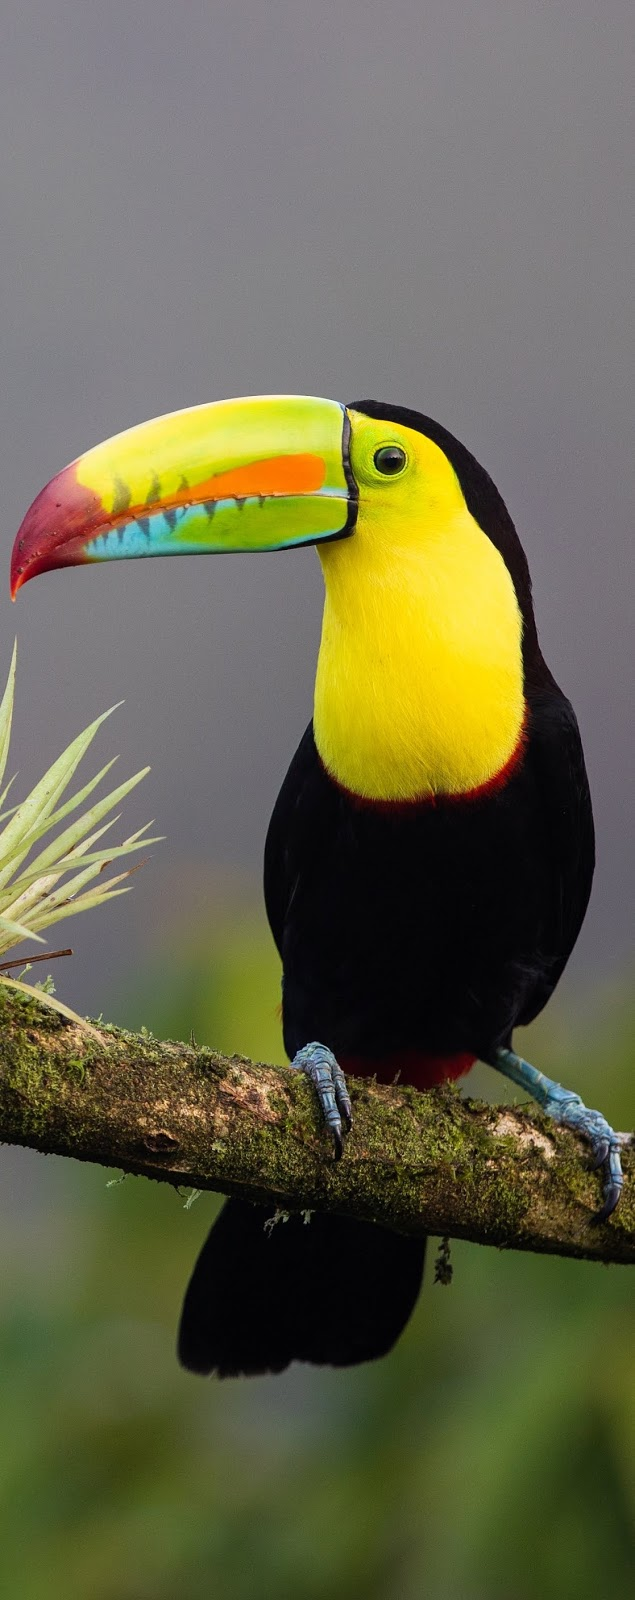 Picture of a keel-billed toucan.